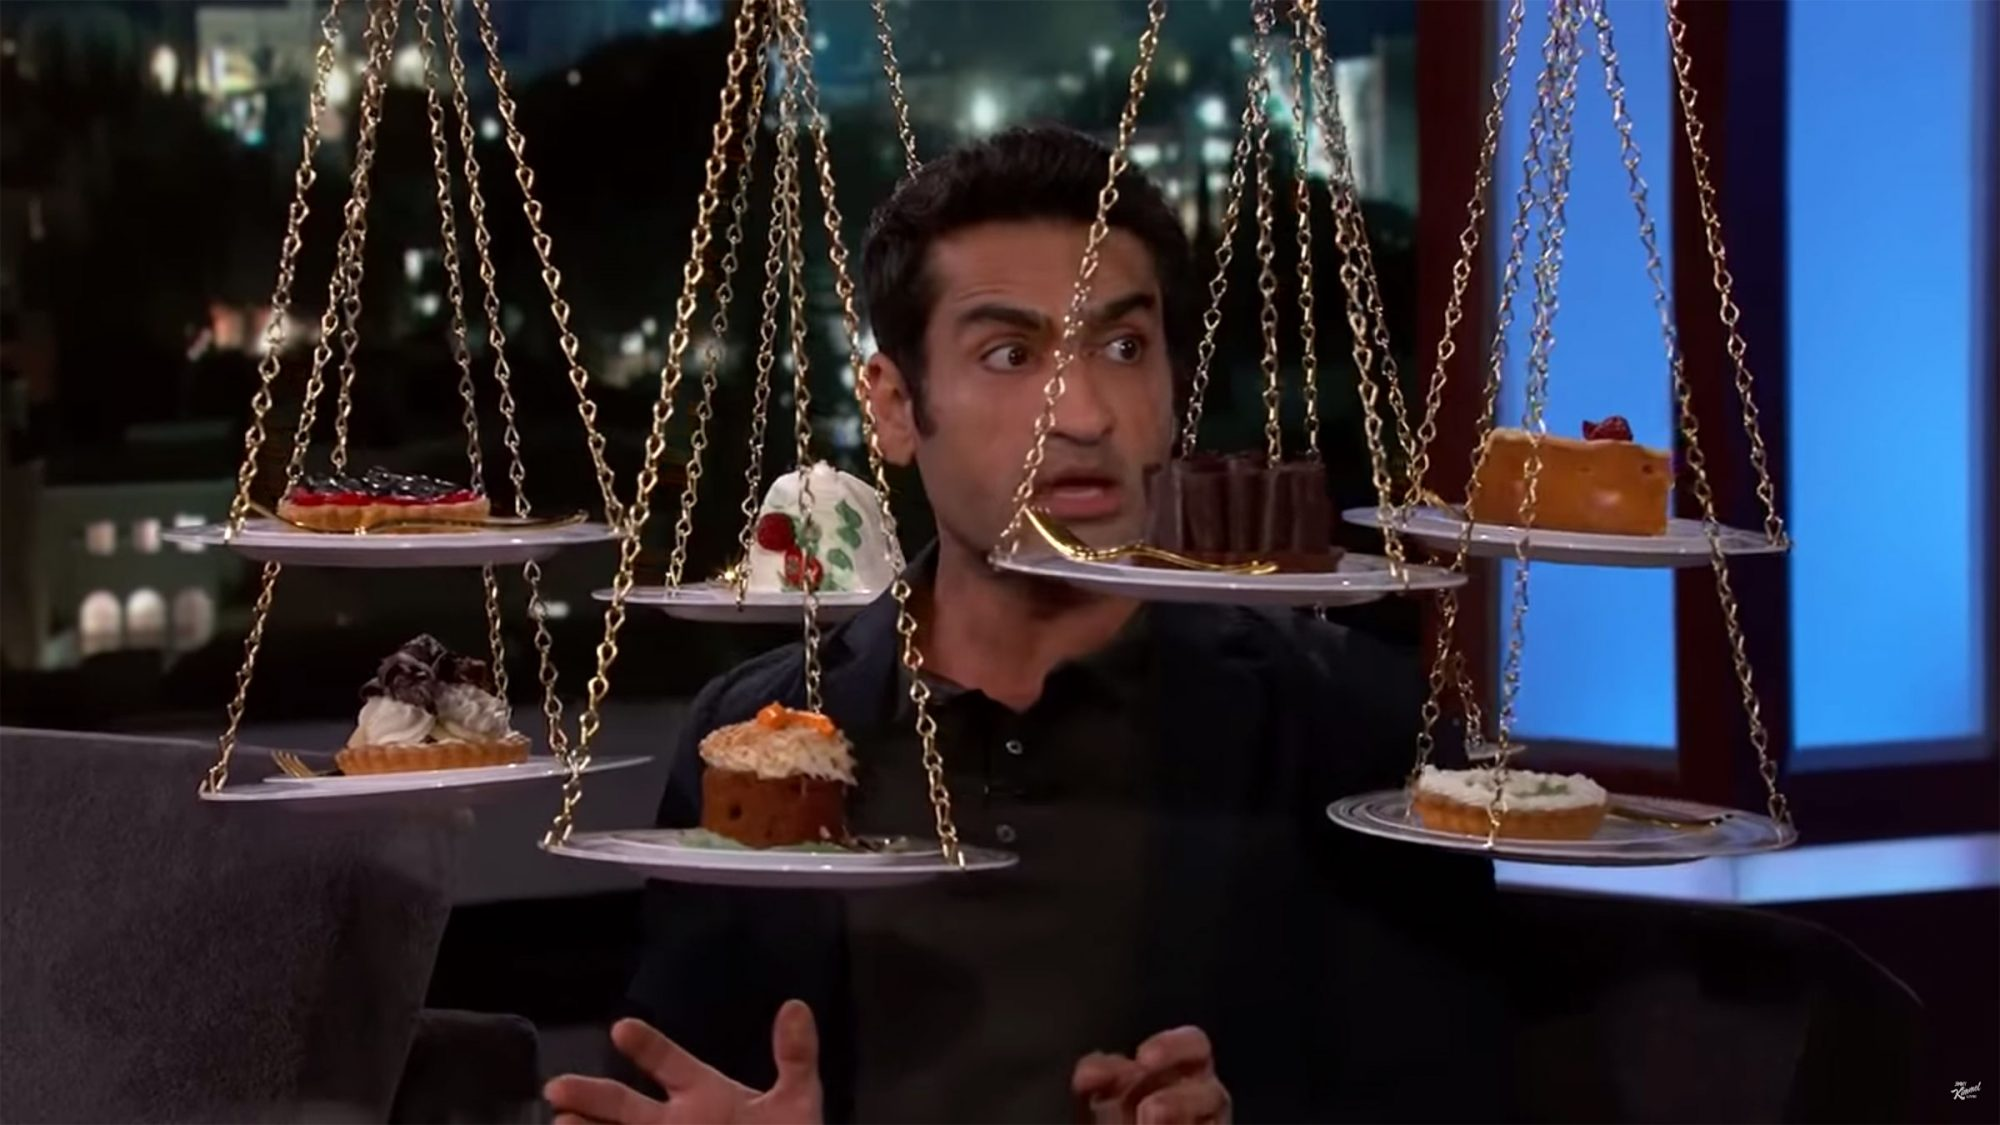 Jimmy Kimmel Live Kumail Nanjiani Has Pizza & Cake for First Time in a Year